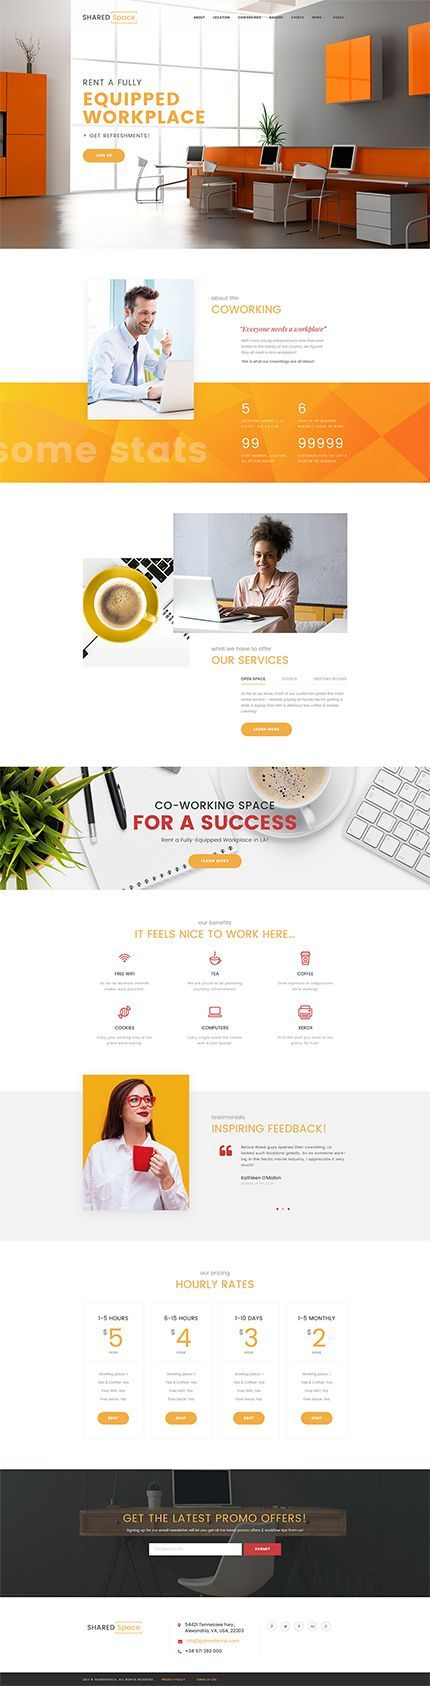 Coworking Workplace #Wordpress #template. #themes #business #responsive #Wordpressthemes